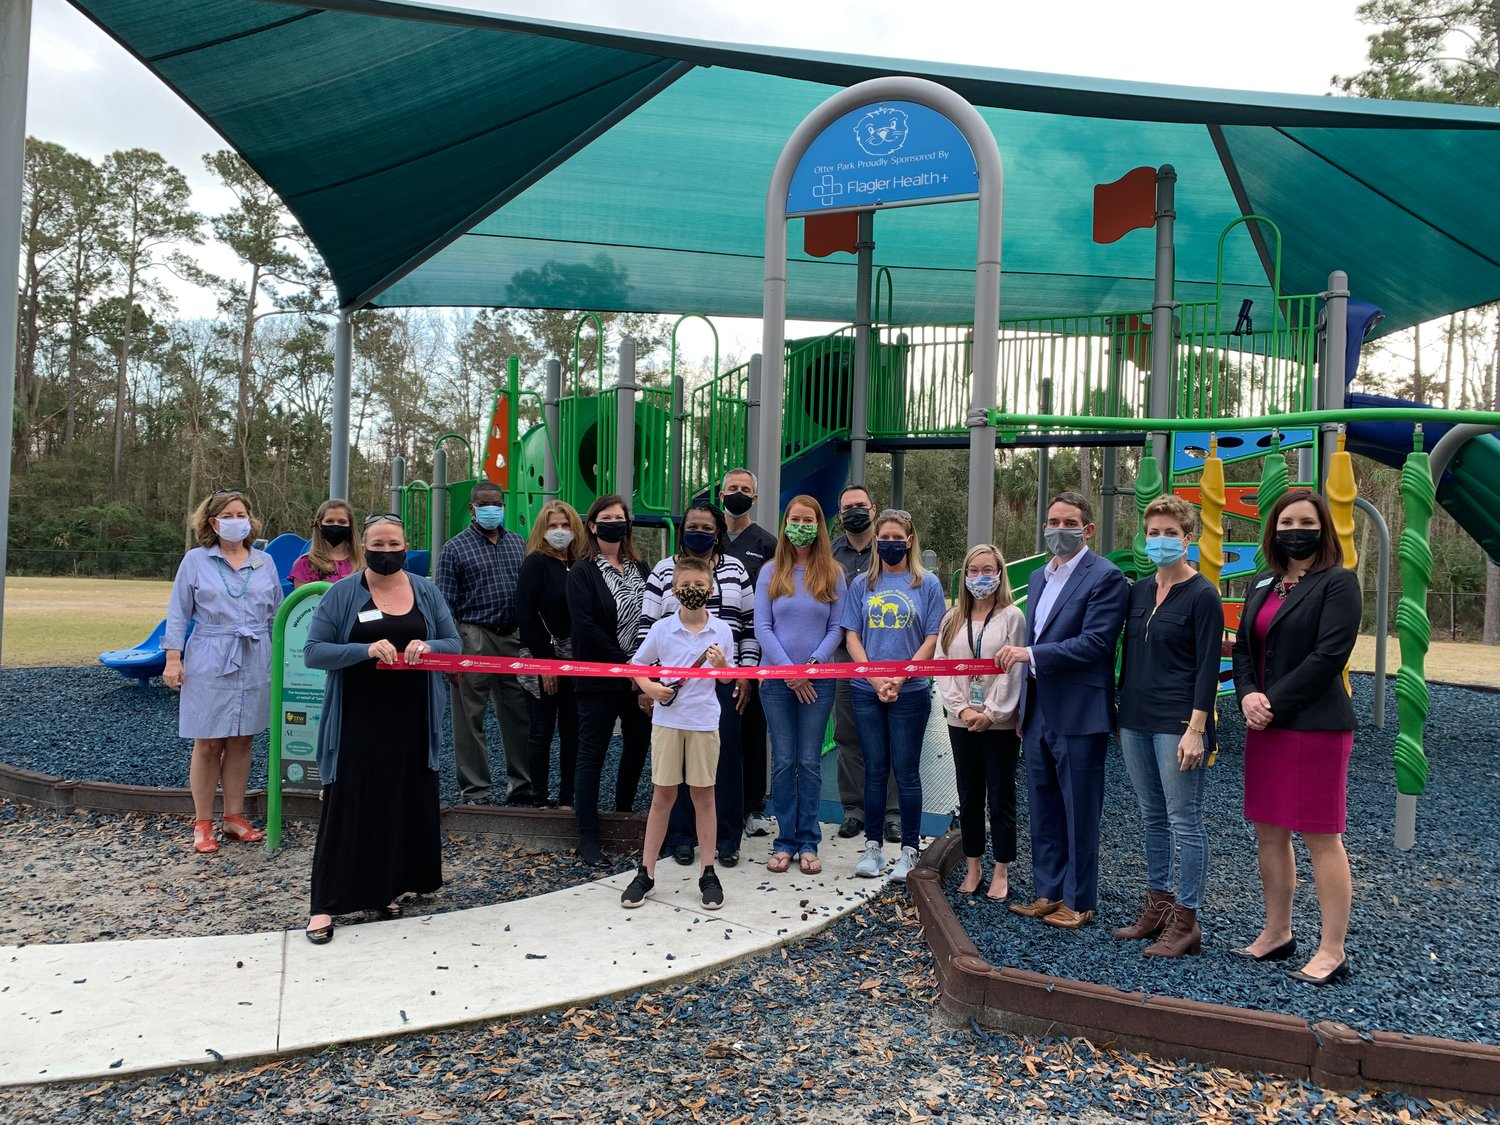 Sponsors, PTO members, administration and the Chamber of Commerce members joined in for a special ribbon-cutting ceremony to recognize the new community-funded play structure at Ocean Palms Elementary School. Third-grader Landon Hunter led the ceremony.